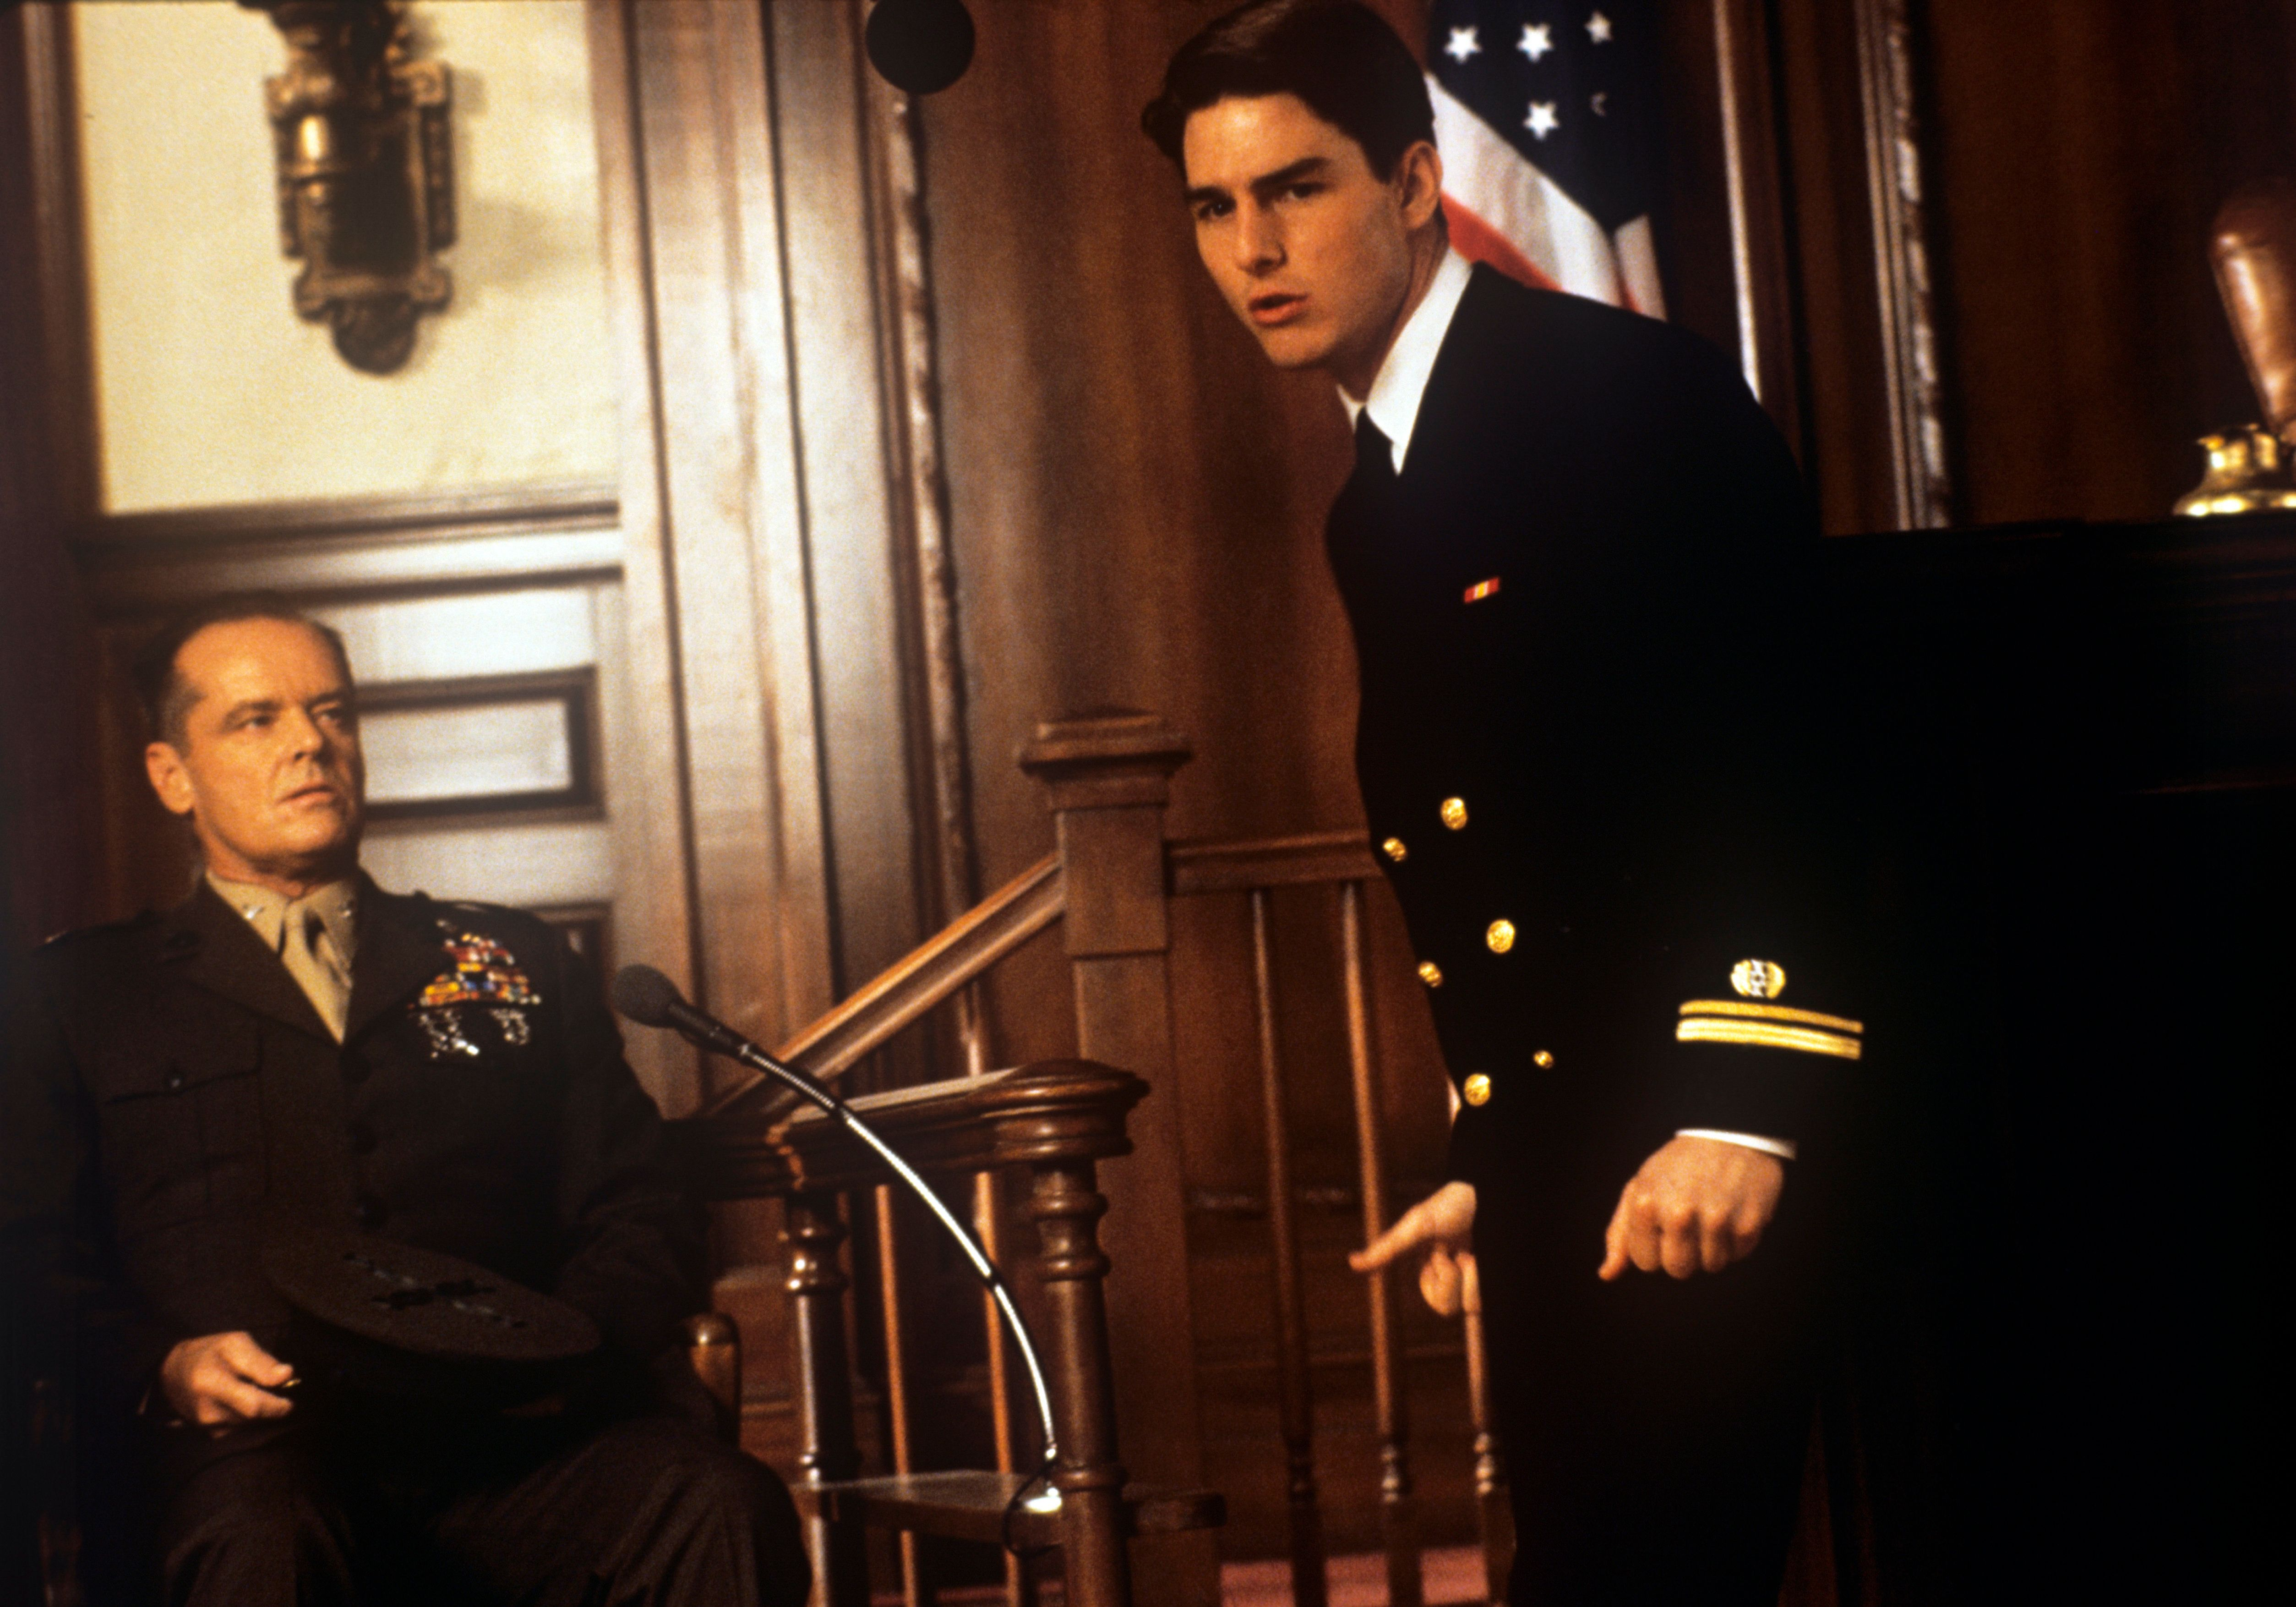 American actor Jack Nicholson playing the role of a colonel and American actor Tom Cruise playing the role of a lawyer acting